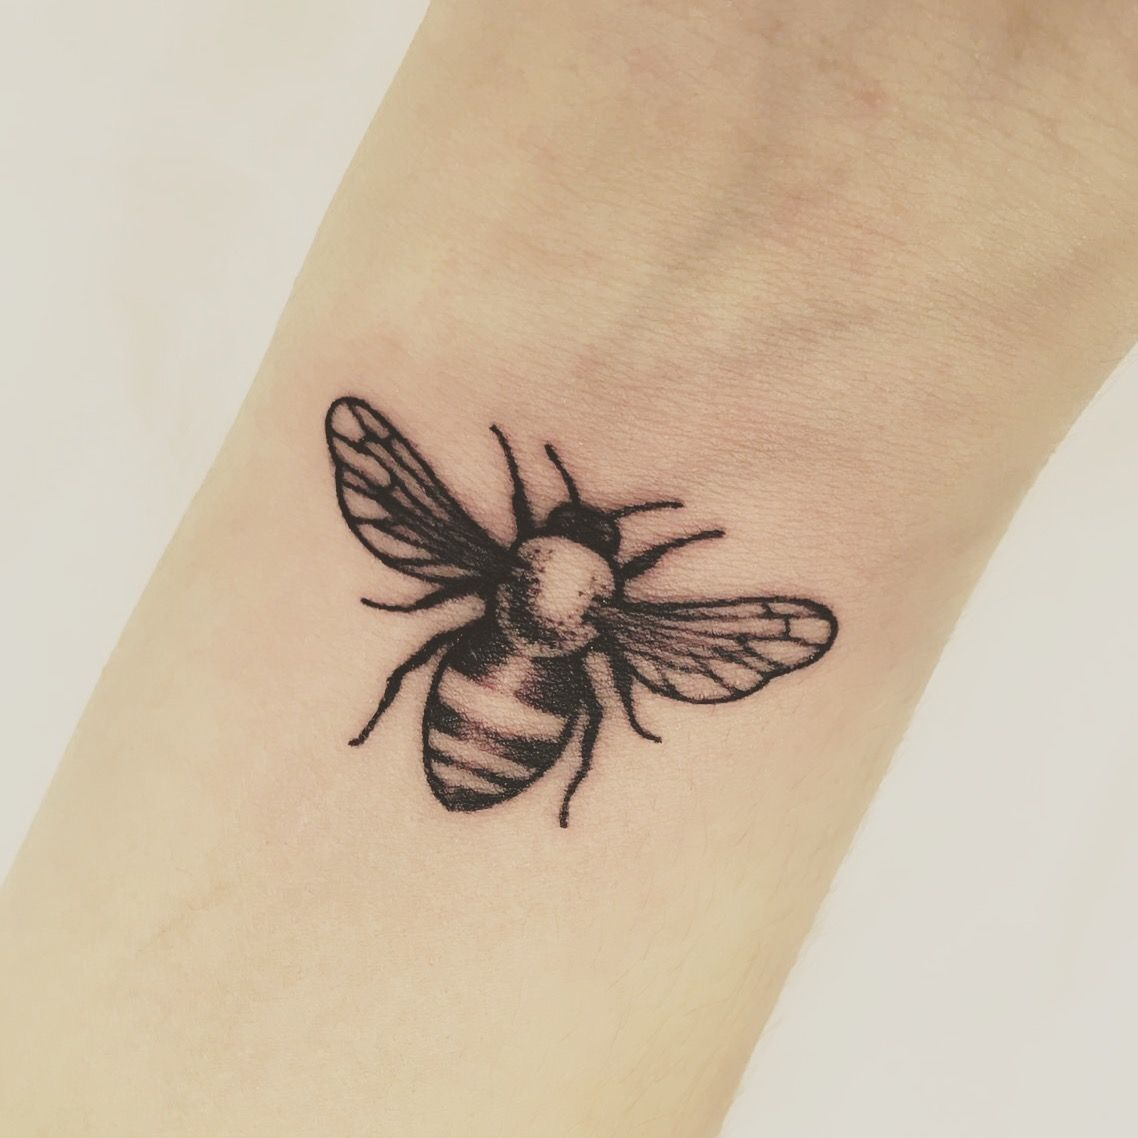 363574f7b Bumble Bee Tattoo, Honey Bee Tattoo, Modern Tattoos, Unique Tattoos